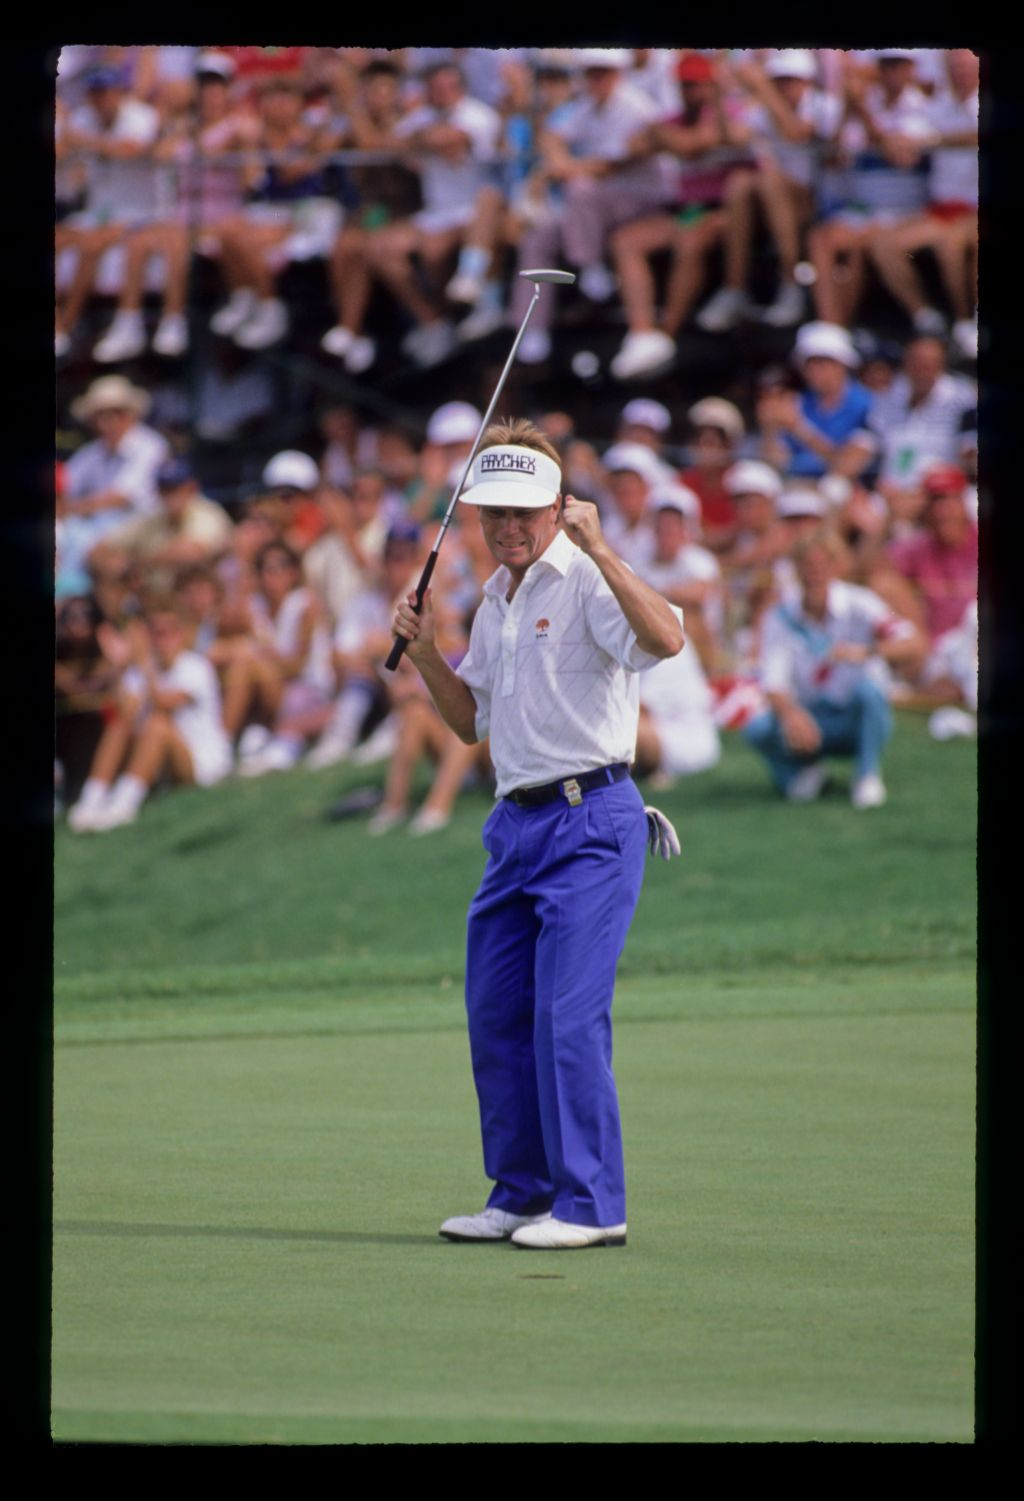 Jeff Sluman sinking the winning putt at the 1988 USPGA